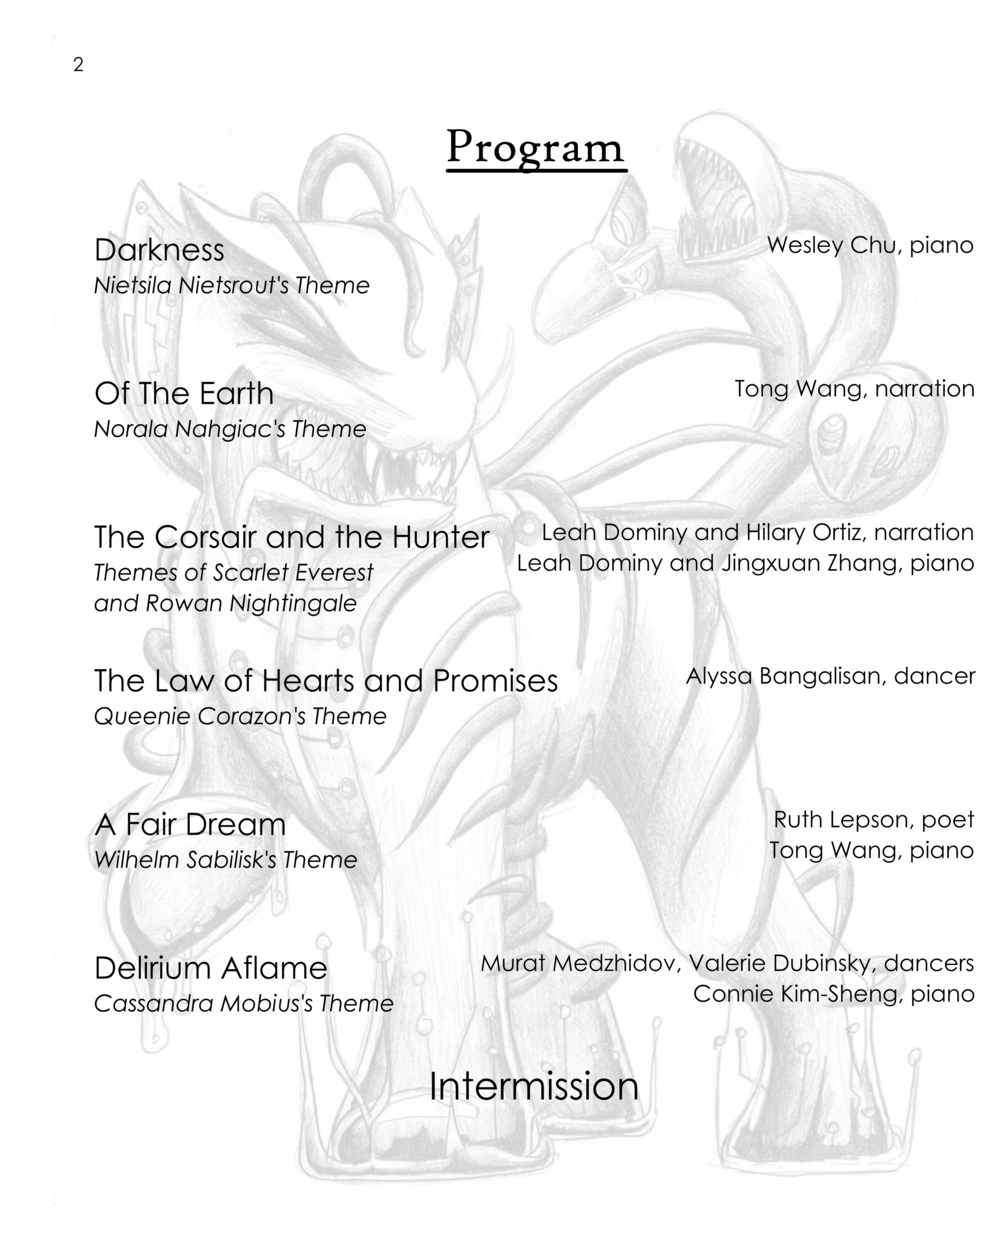 Program Booklet (print)0004.png